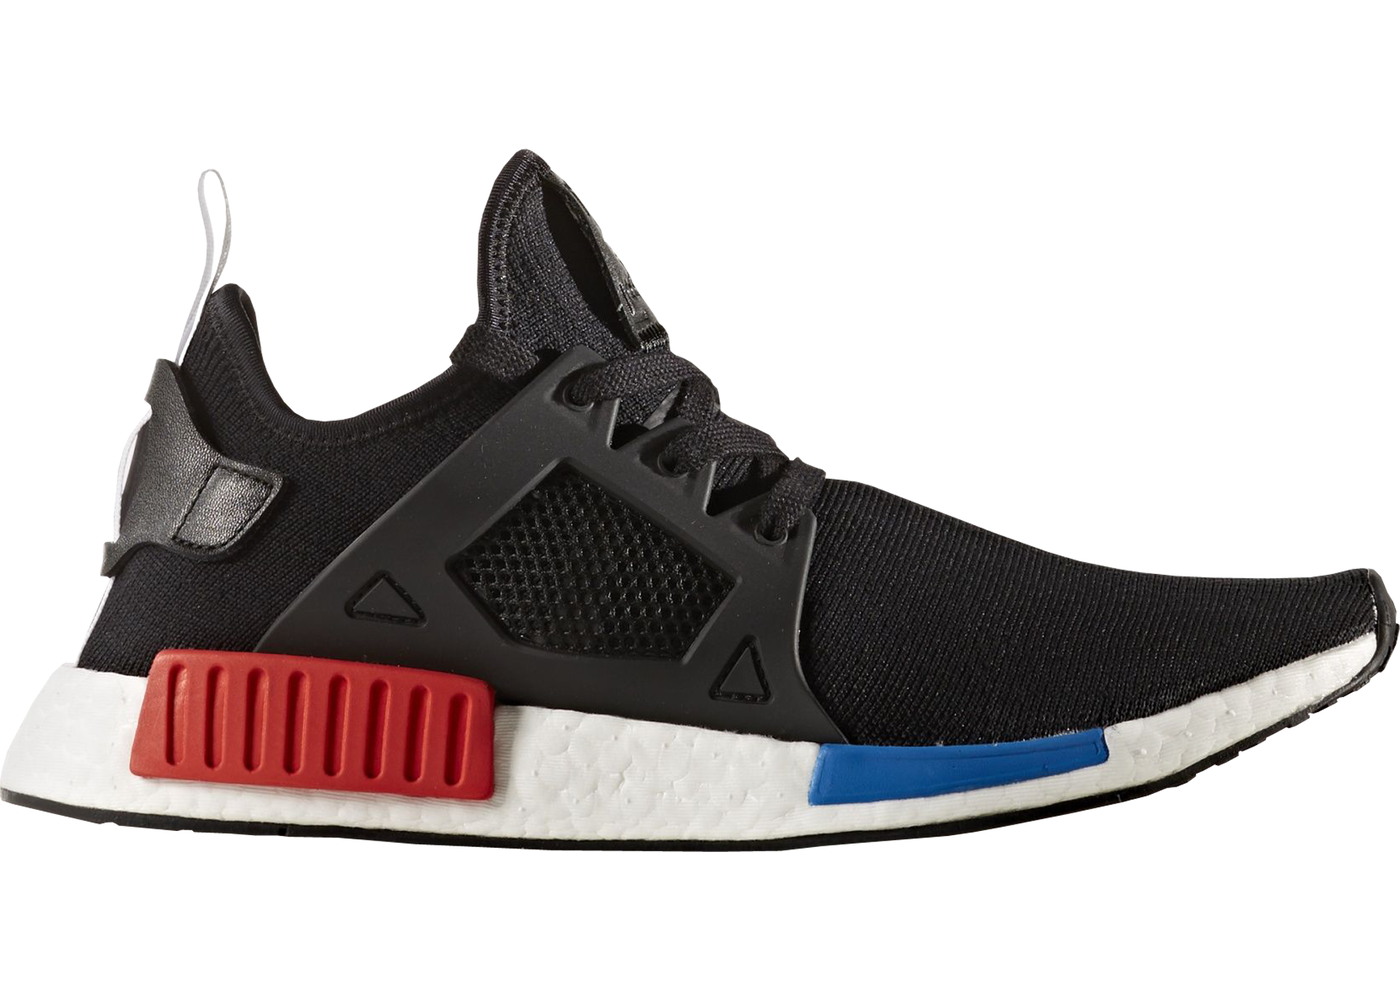 Buy adidas nmd xr1 mens blue OFF73% Discounted AMS Realty